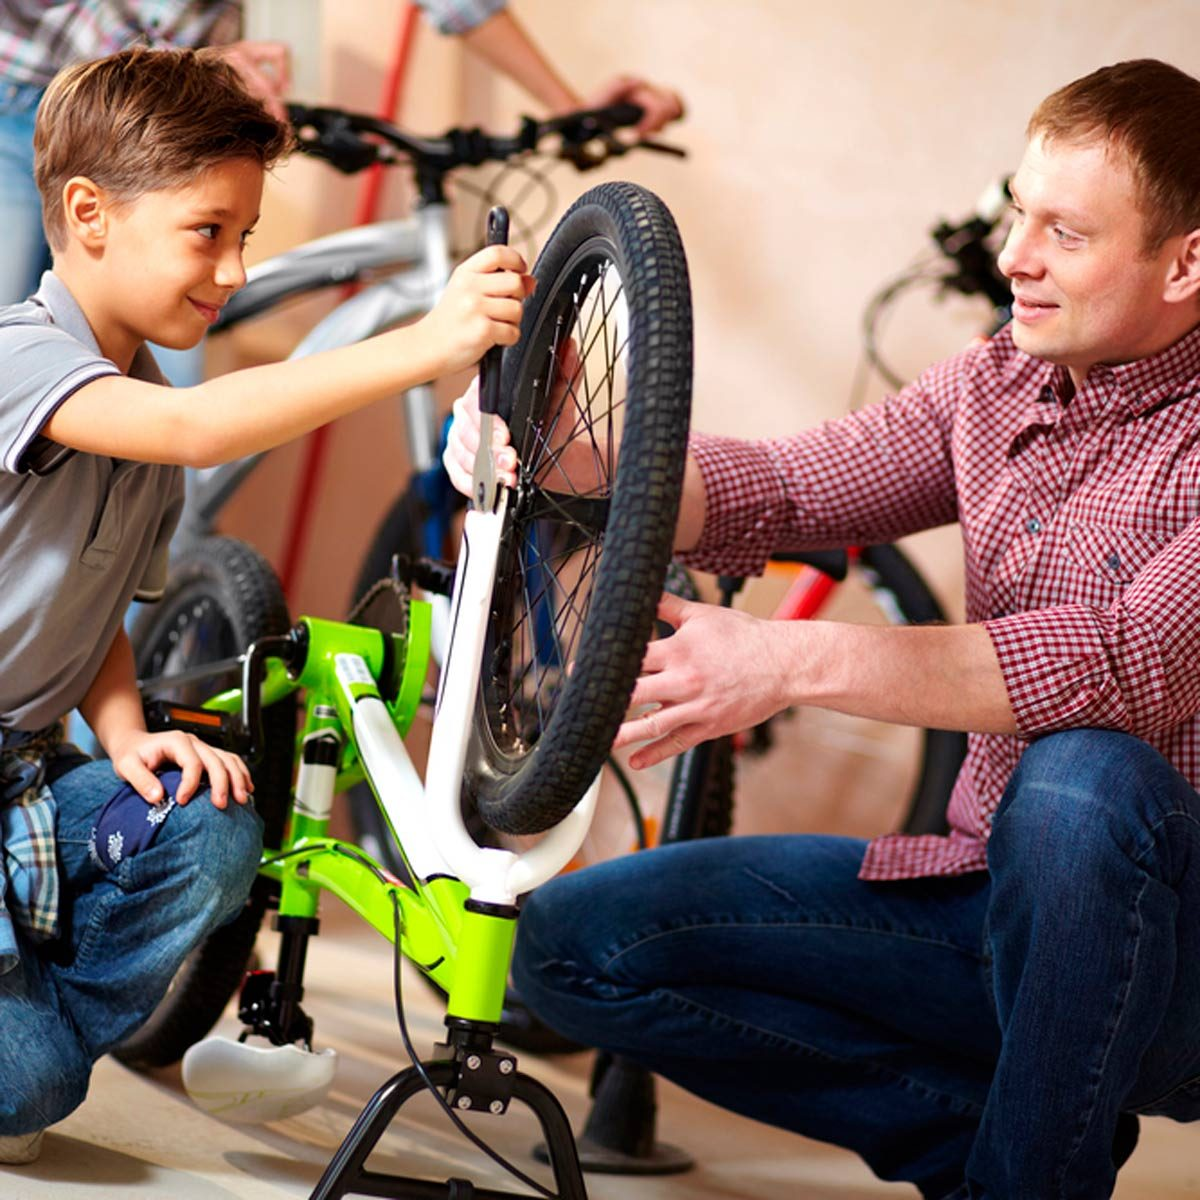 Parent and child working together on an upturned bike